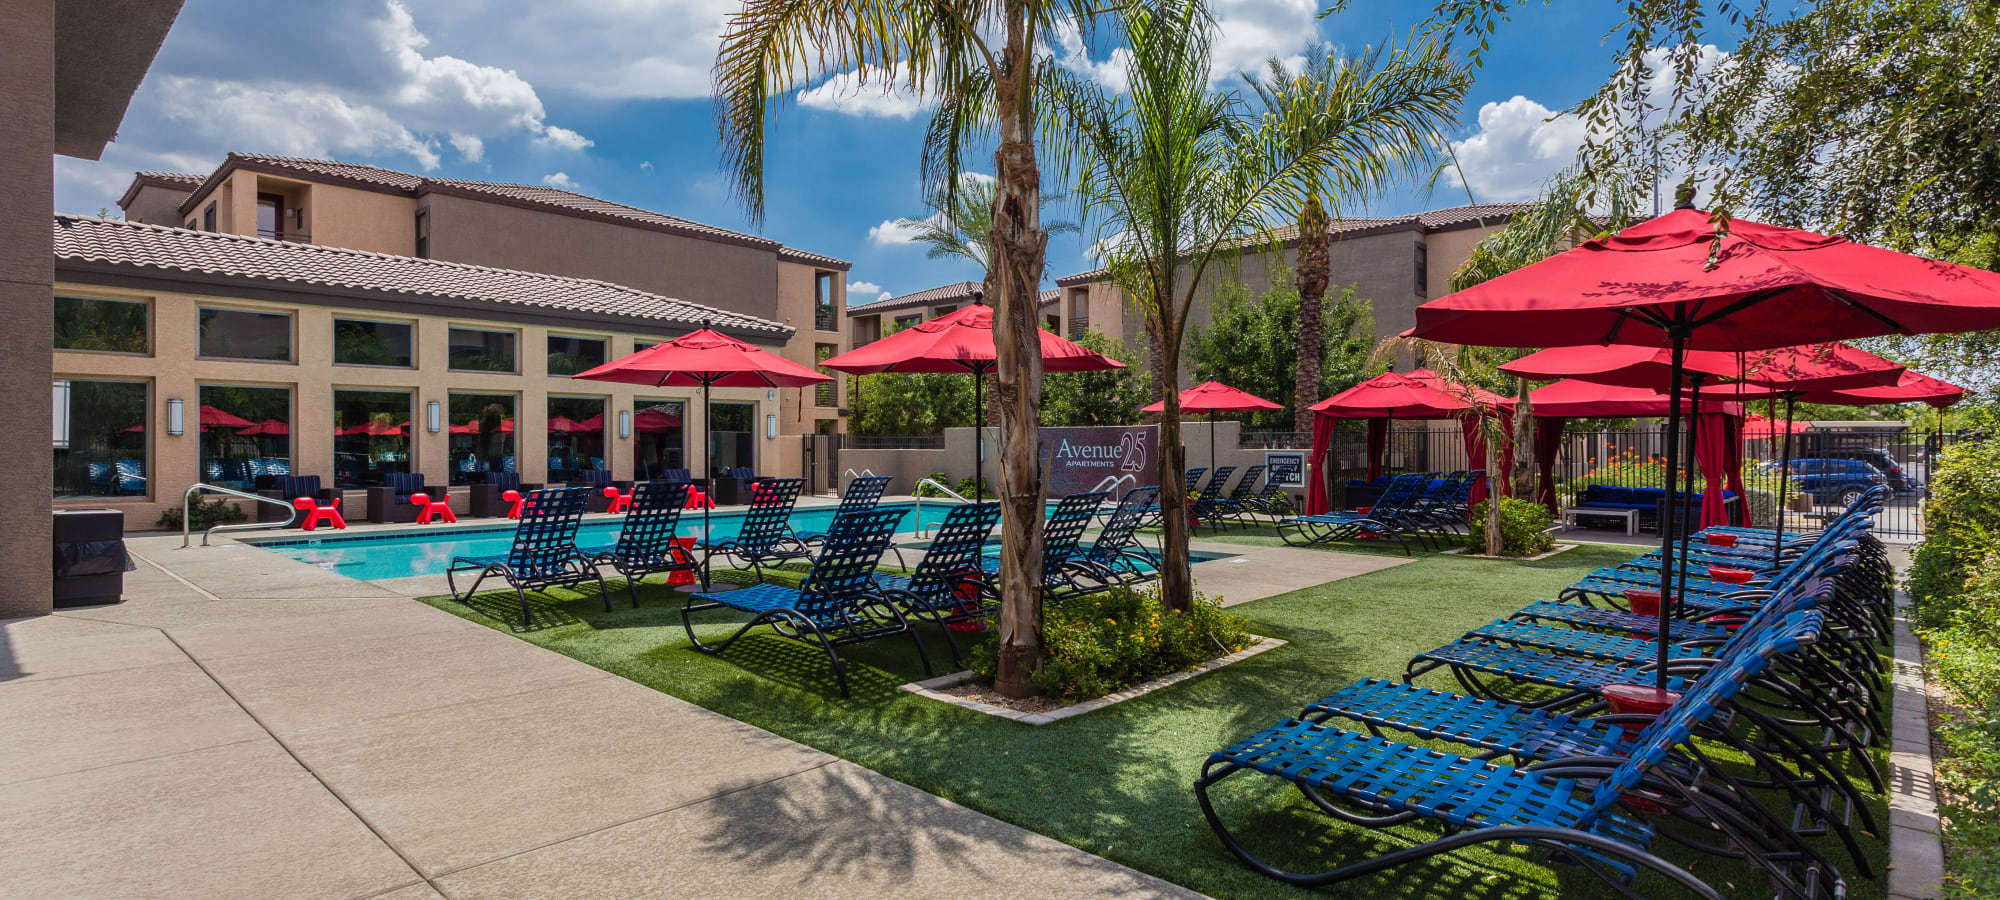 Covered outdoor seating by the pool at Avenue 25 Apartments in Phoenix, Arizona